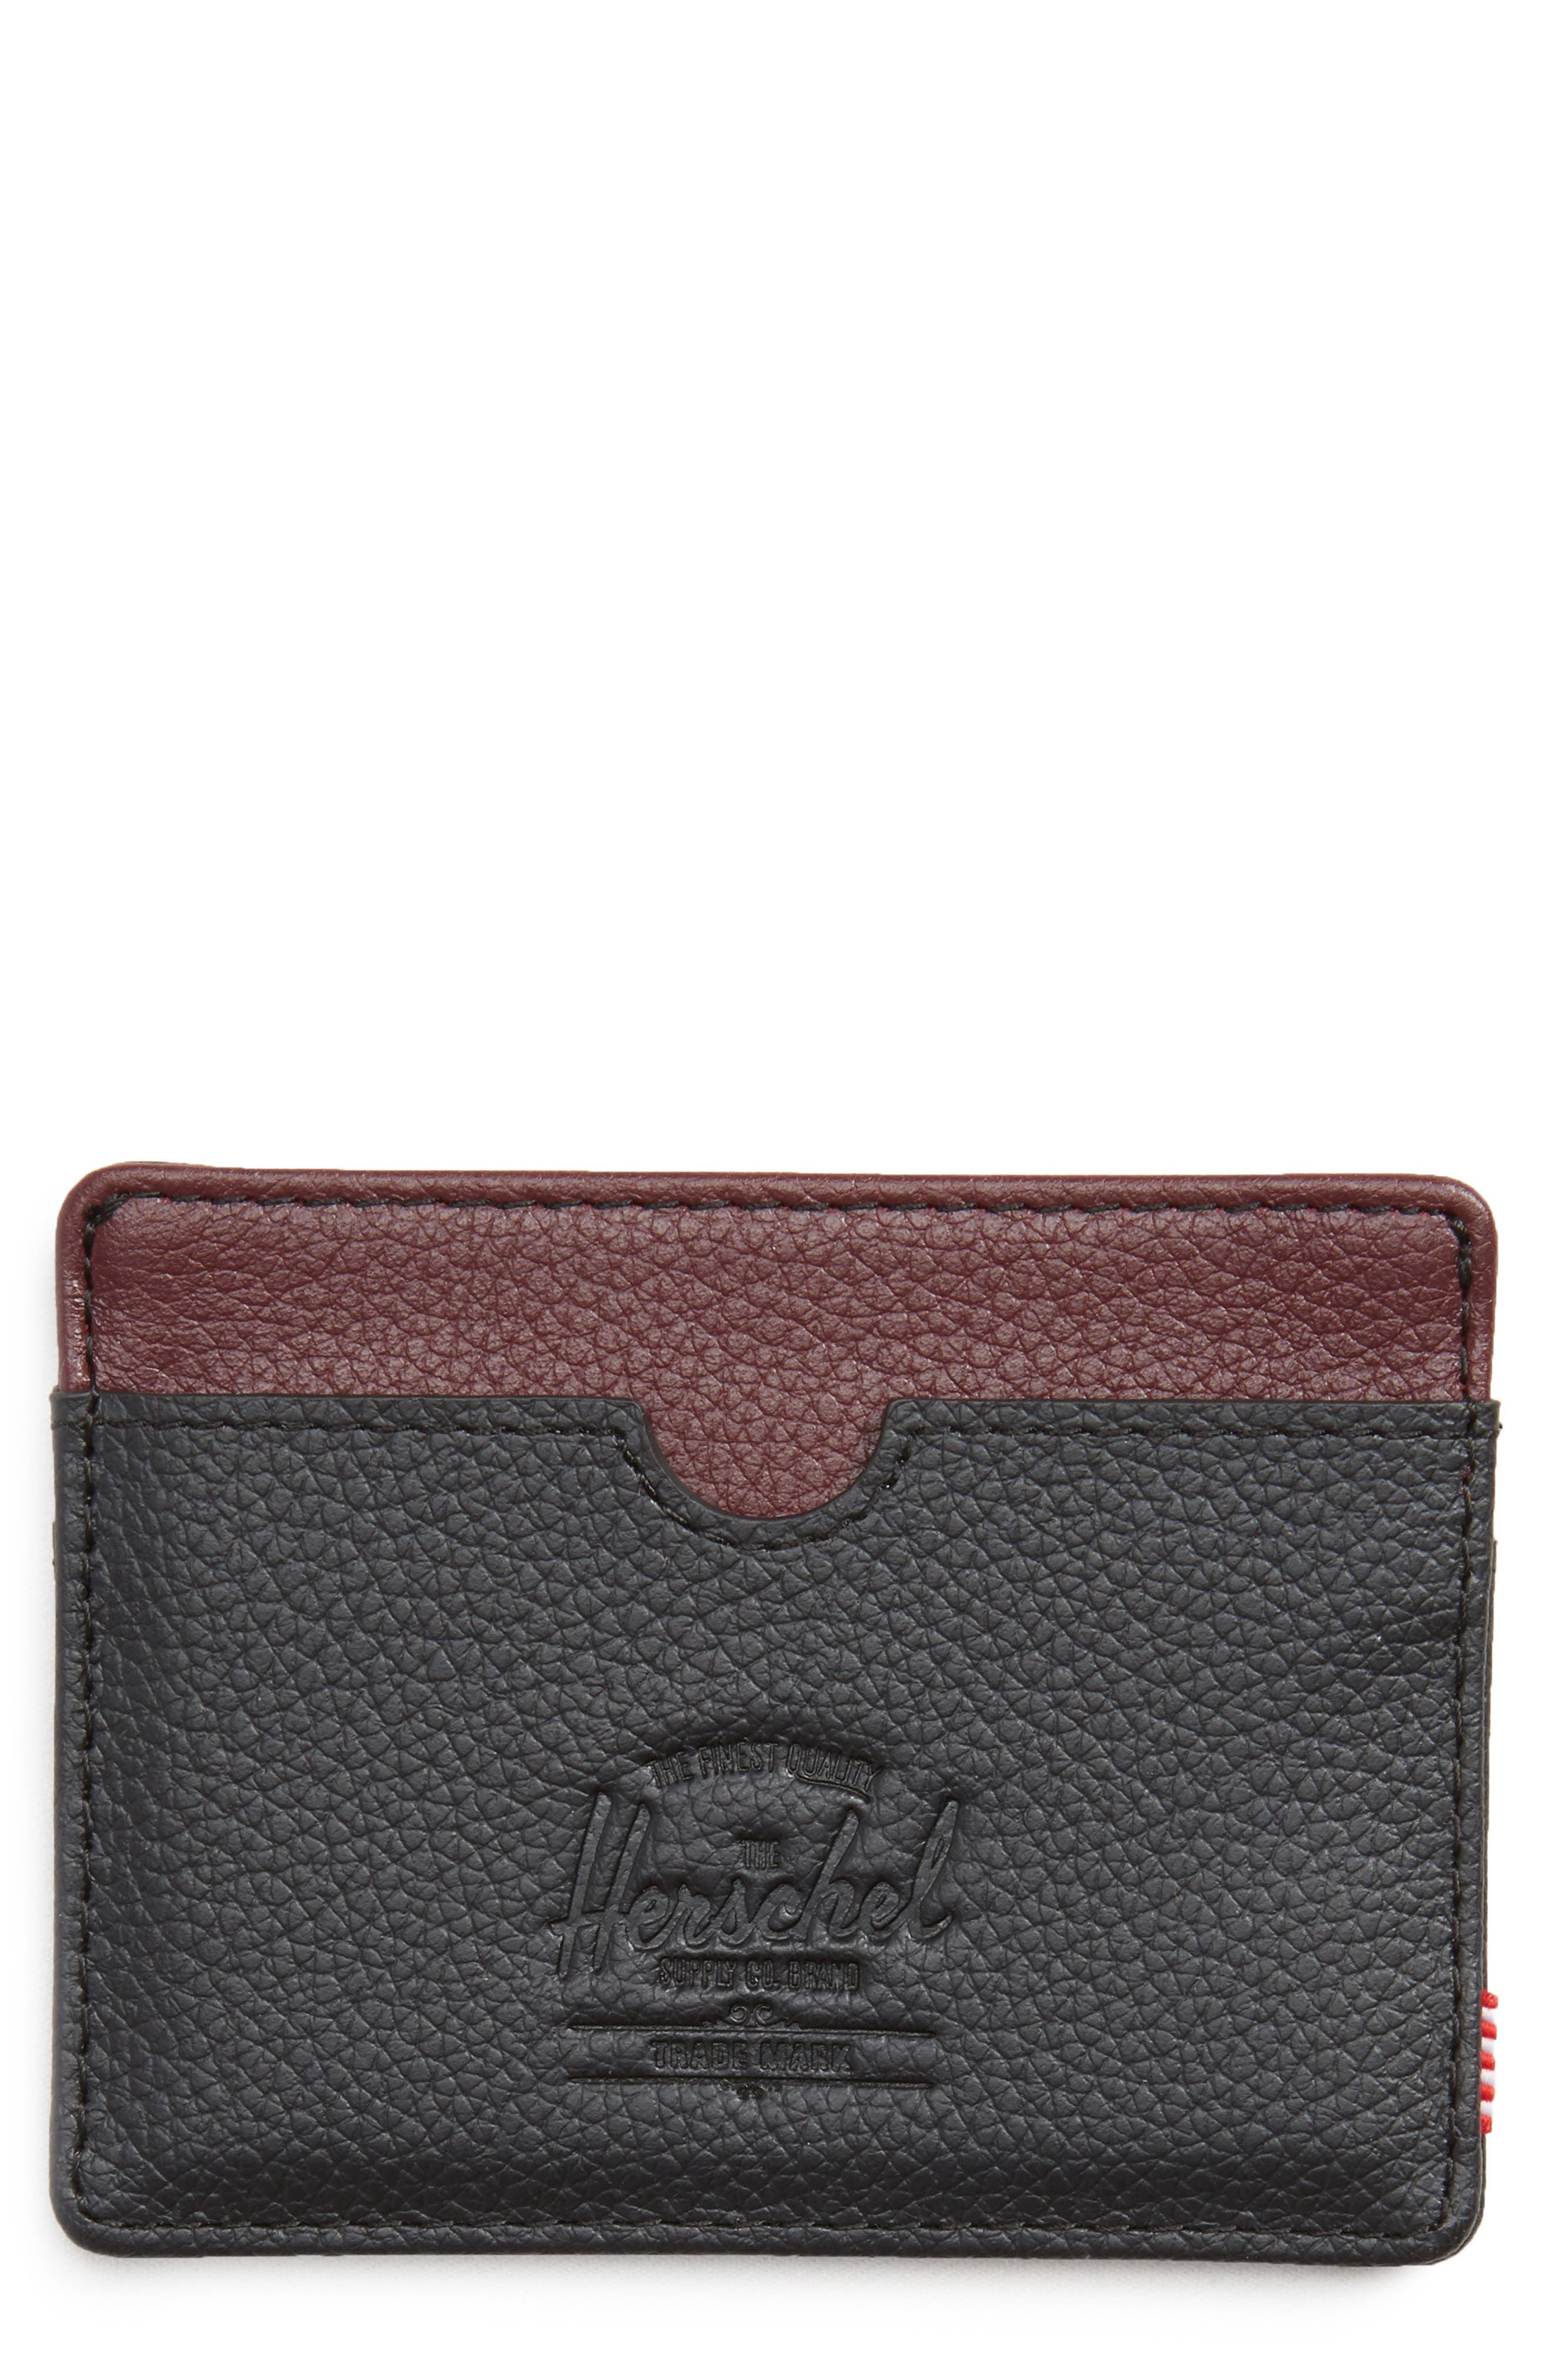 Herschel Supply Co. Charlie Pebble Leather Card Case